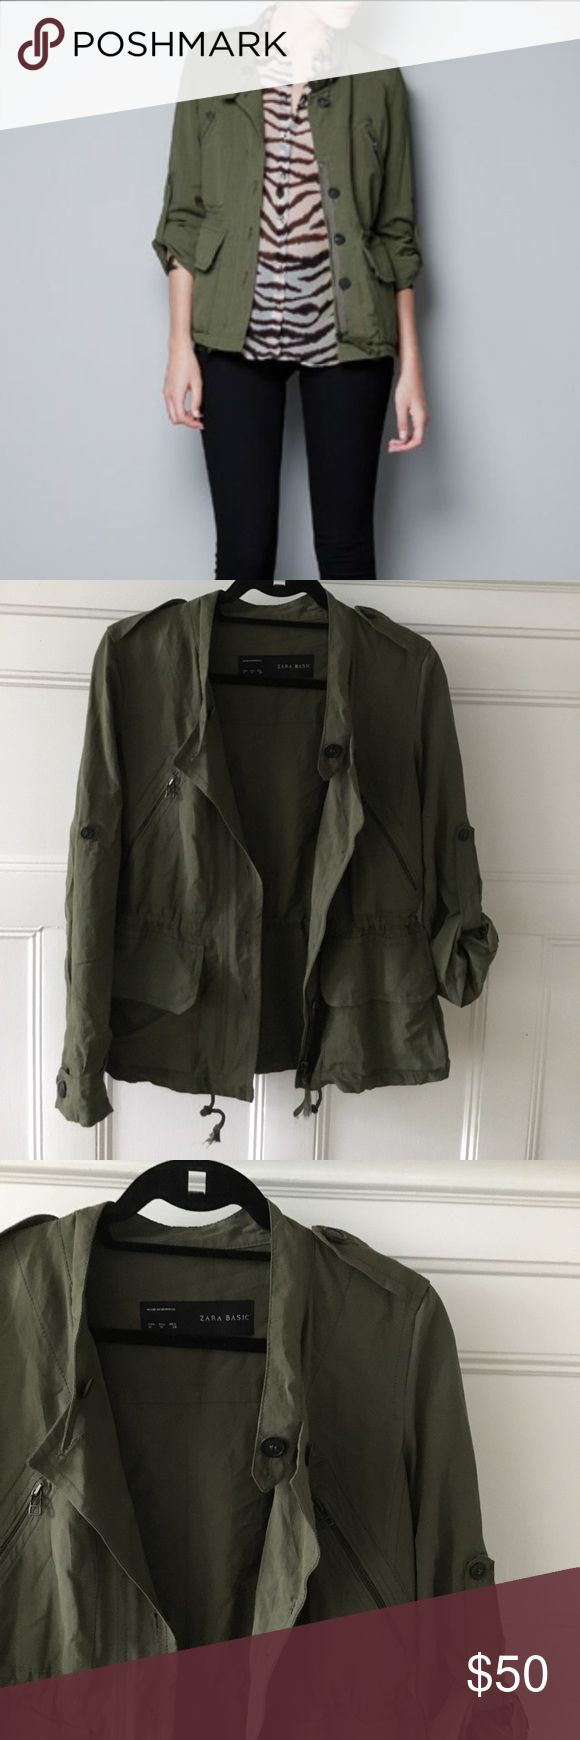 Zara Army Jacket Zara army jacket with amazing detailing! Slightly cinched waist, sleeve can be rolled up or worn down, amazing button and zipper detailing. Great condition-- worn once! Buttons down the front, but closes with zipper. Zipper tie is frayed naturally. Zara Jackets & Coats Utility Jackets